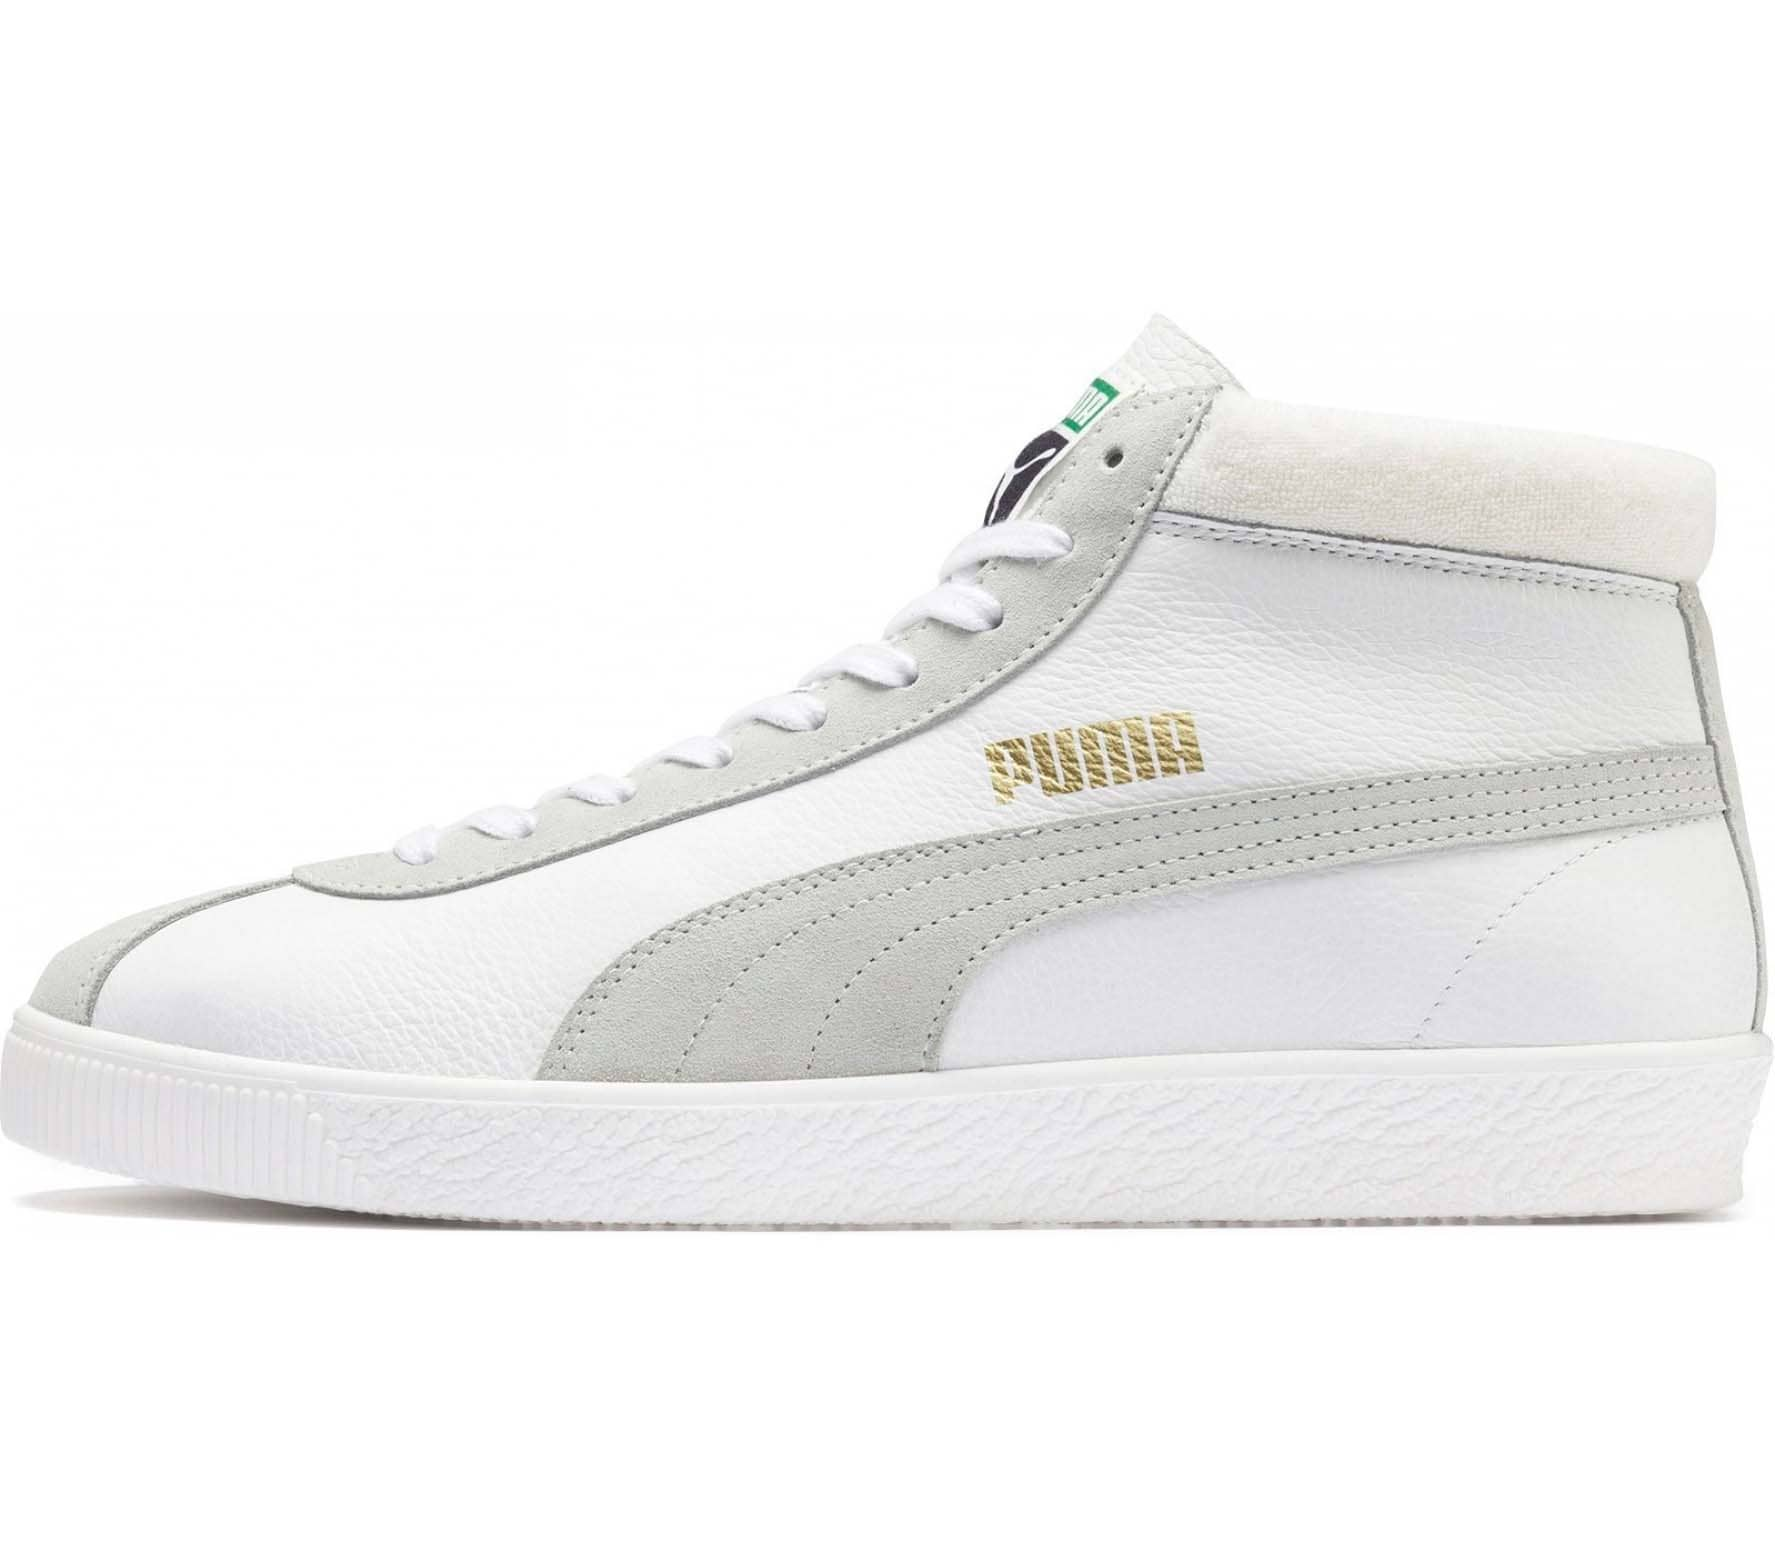 Puma Basket '68 Mid Shoes